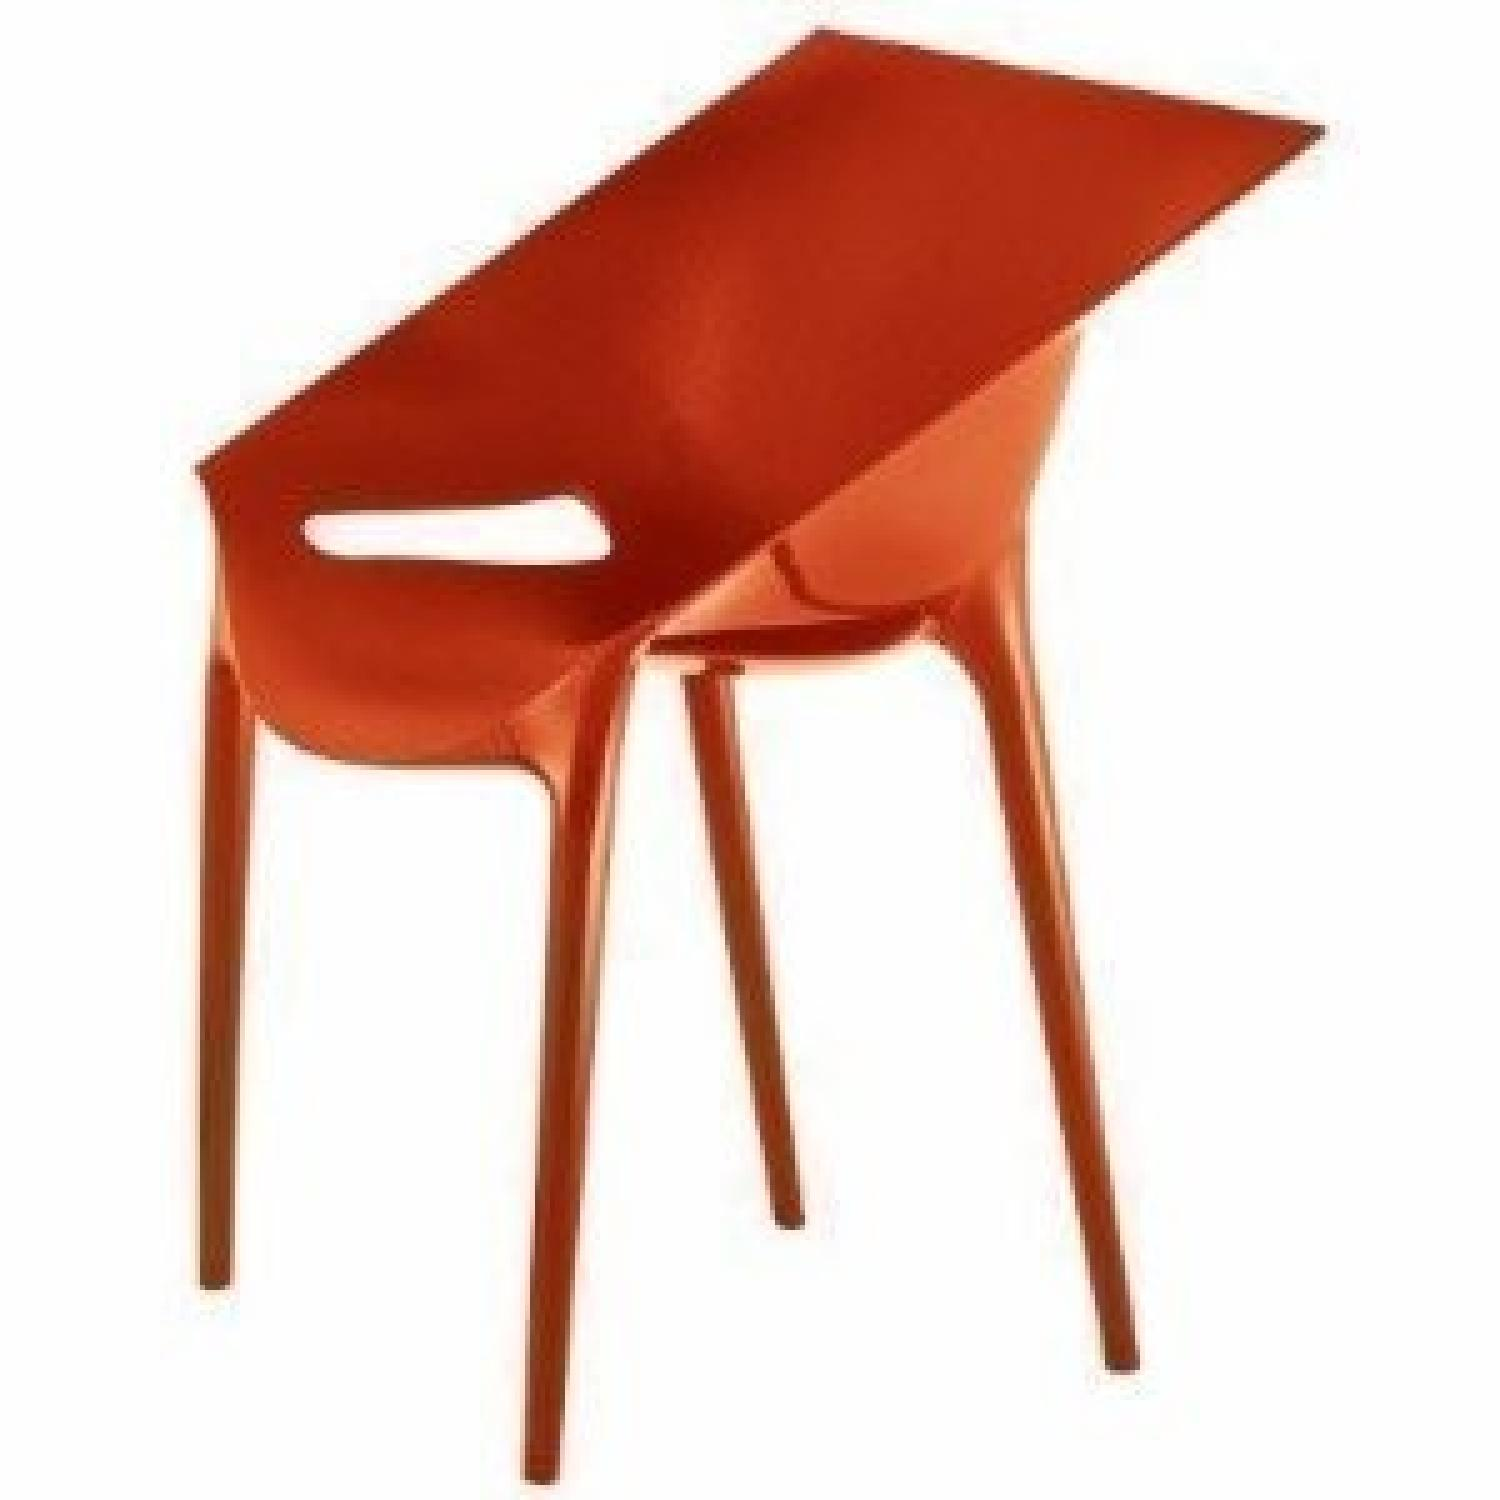 Kartell Dr. Yes Chair by Philippe Starck in Matte Orange Red - image-2